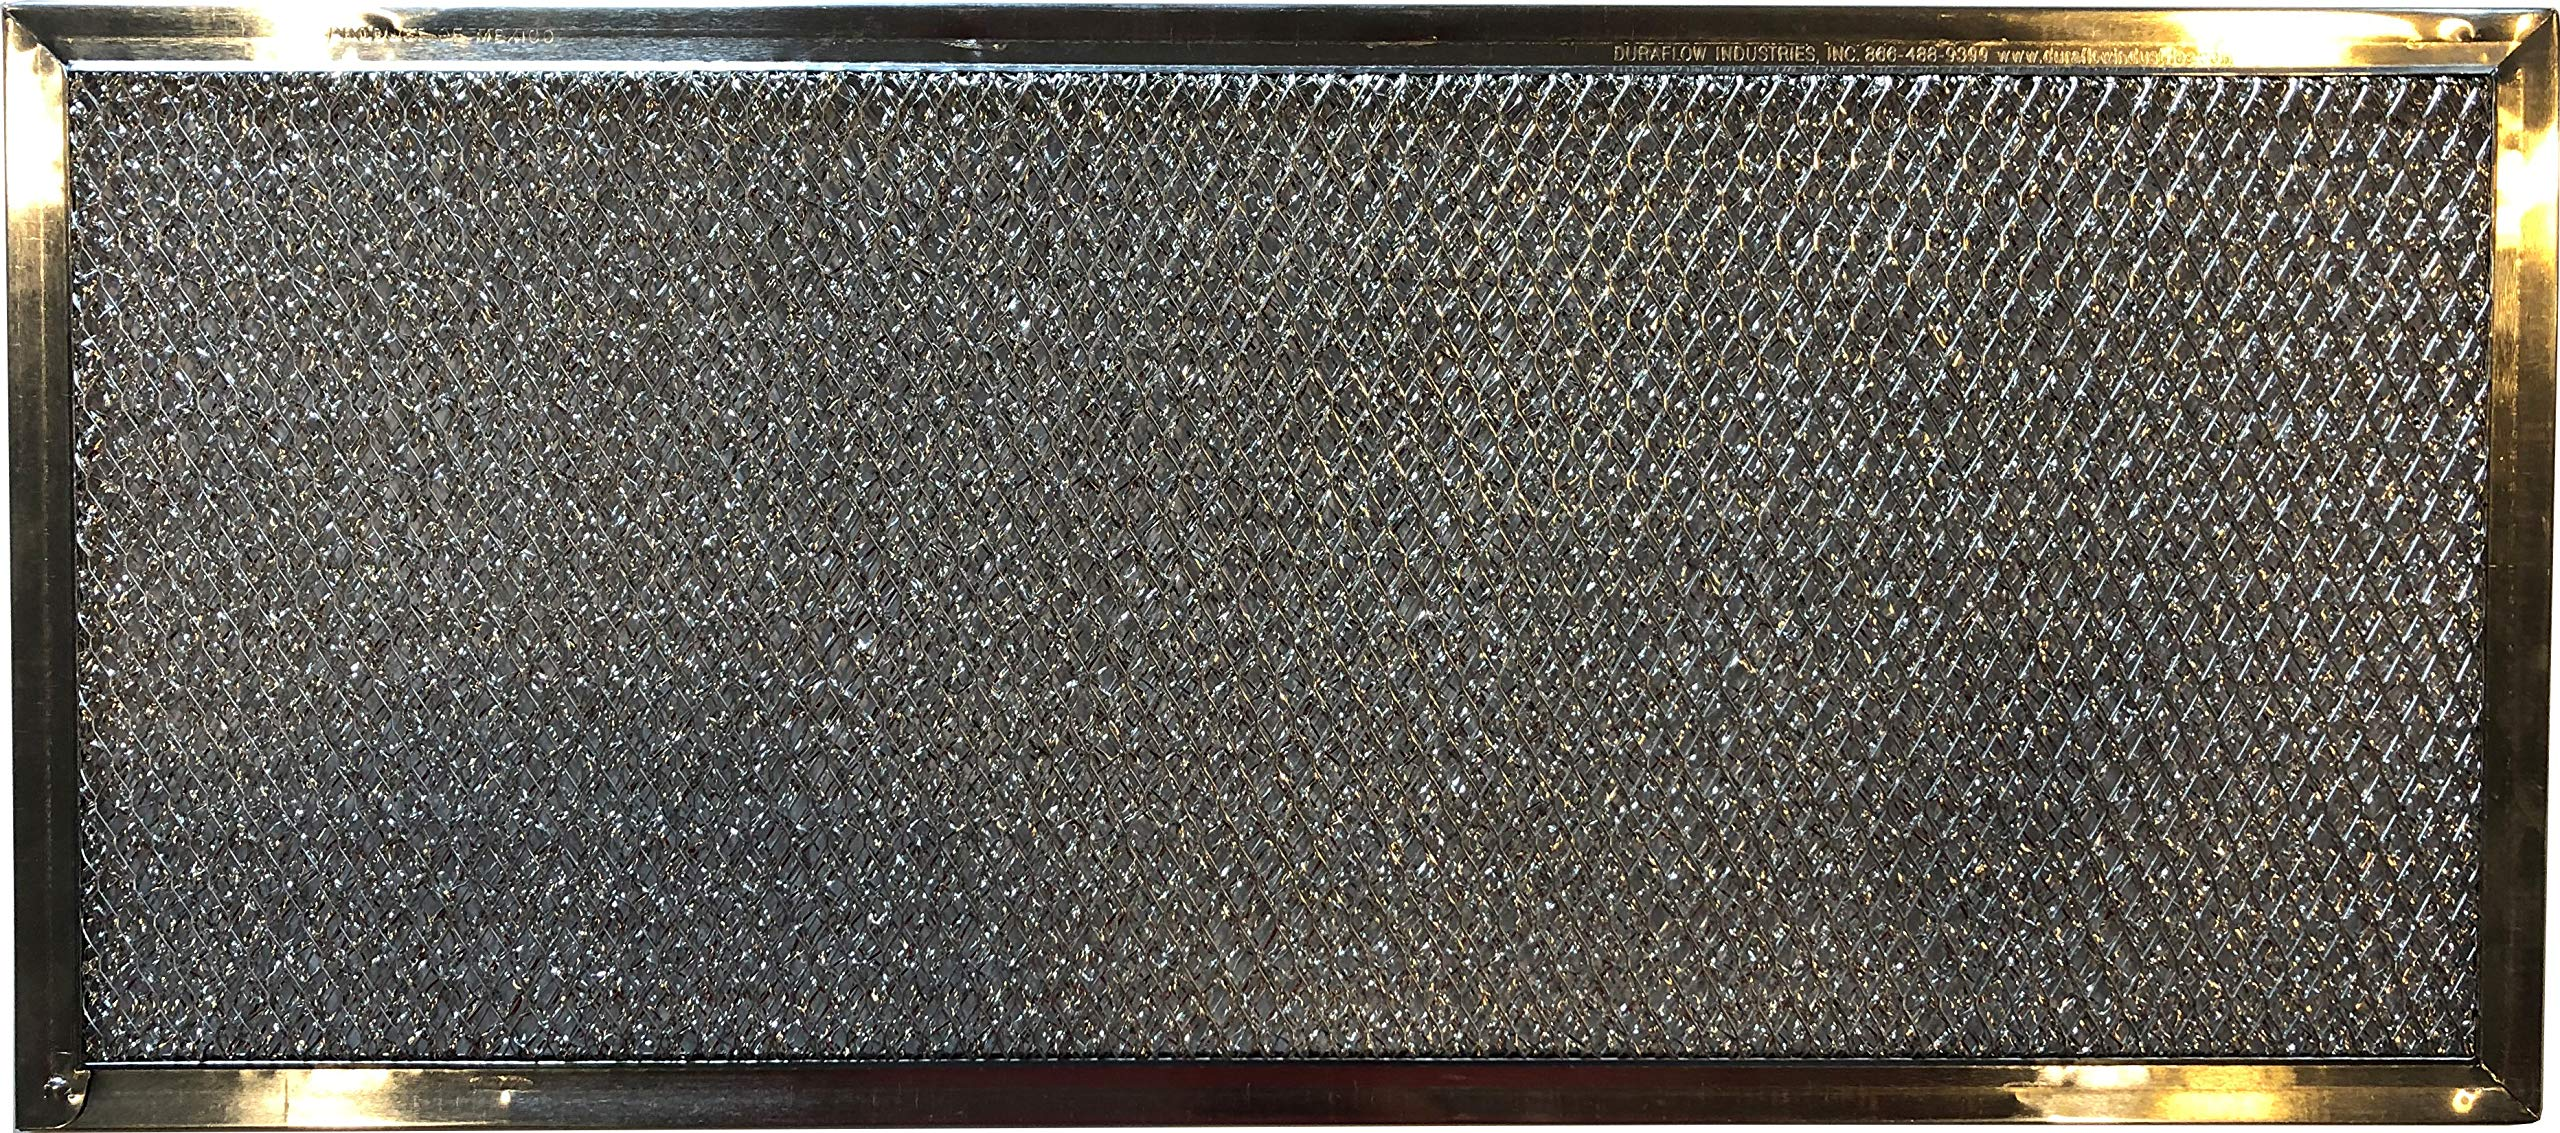 Replacement Aluminum Range Filter Compatible with Maytag Jenn Air 71002111   6 7/8 X 15 5/8 X 3/32